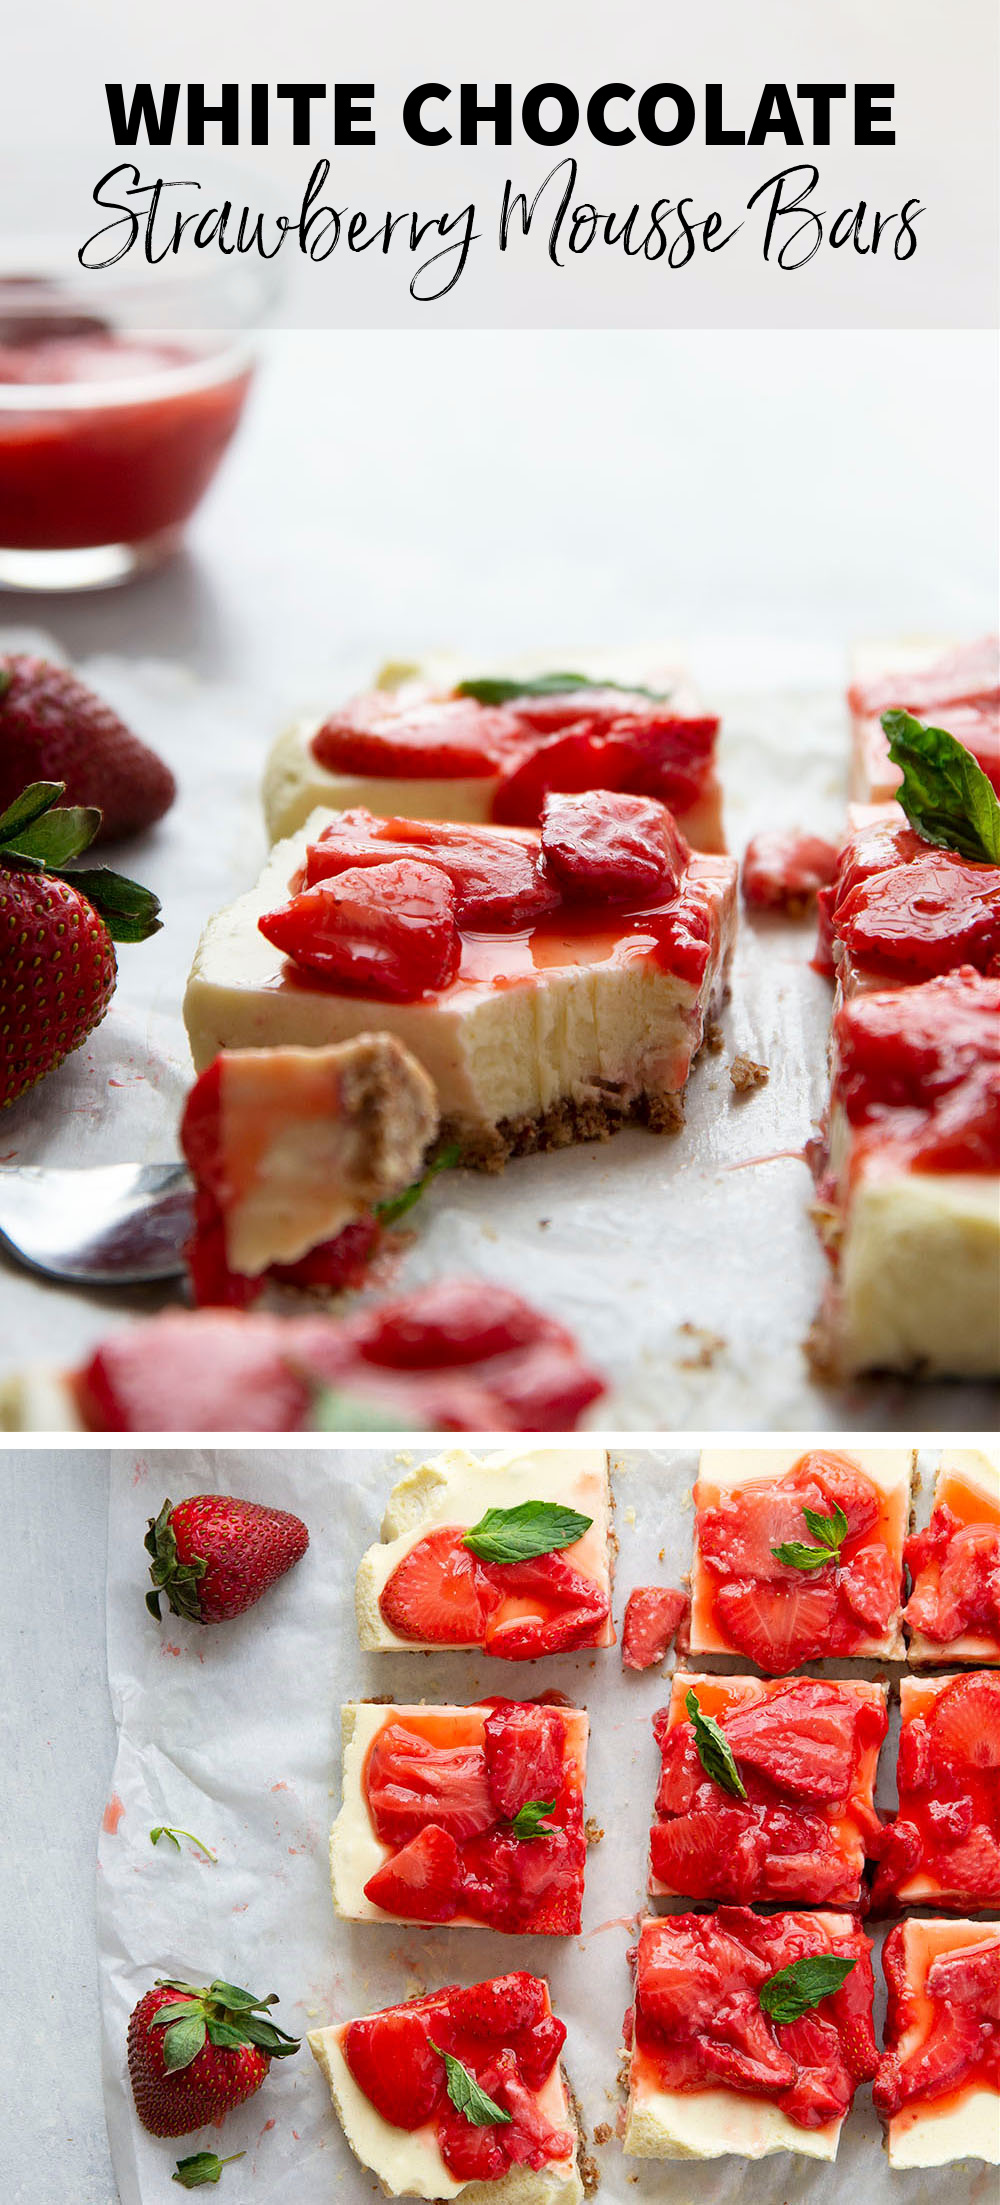 Rich white chocolate and juicy strawberries are the perfect combo in these silky white chocolate strawberry mousse bars. - easy to make ahead of time for a gathering and gluten-free!